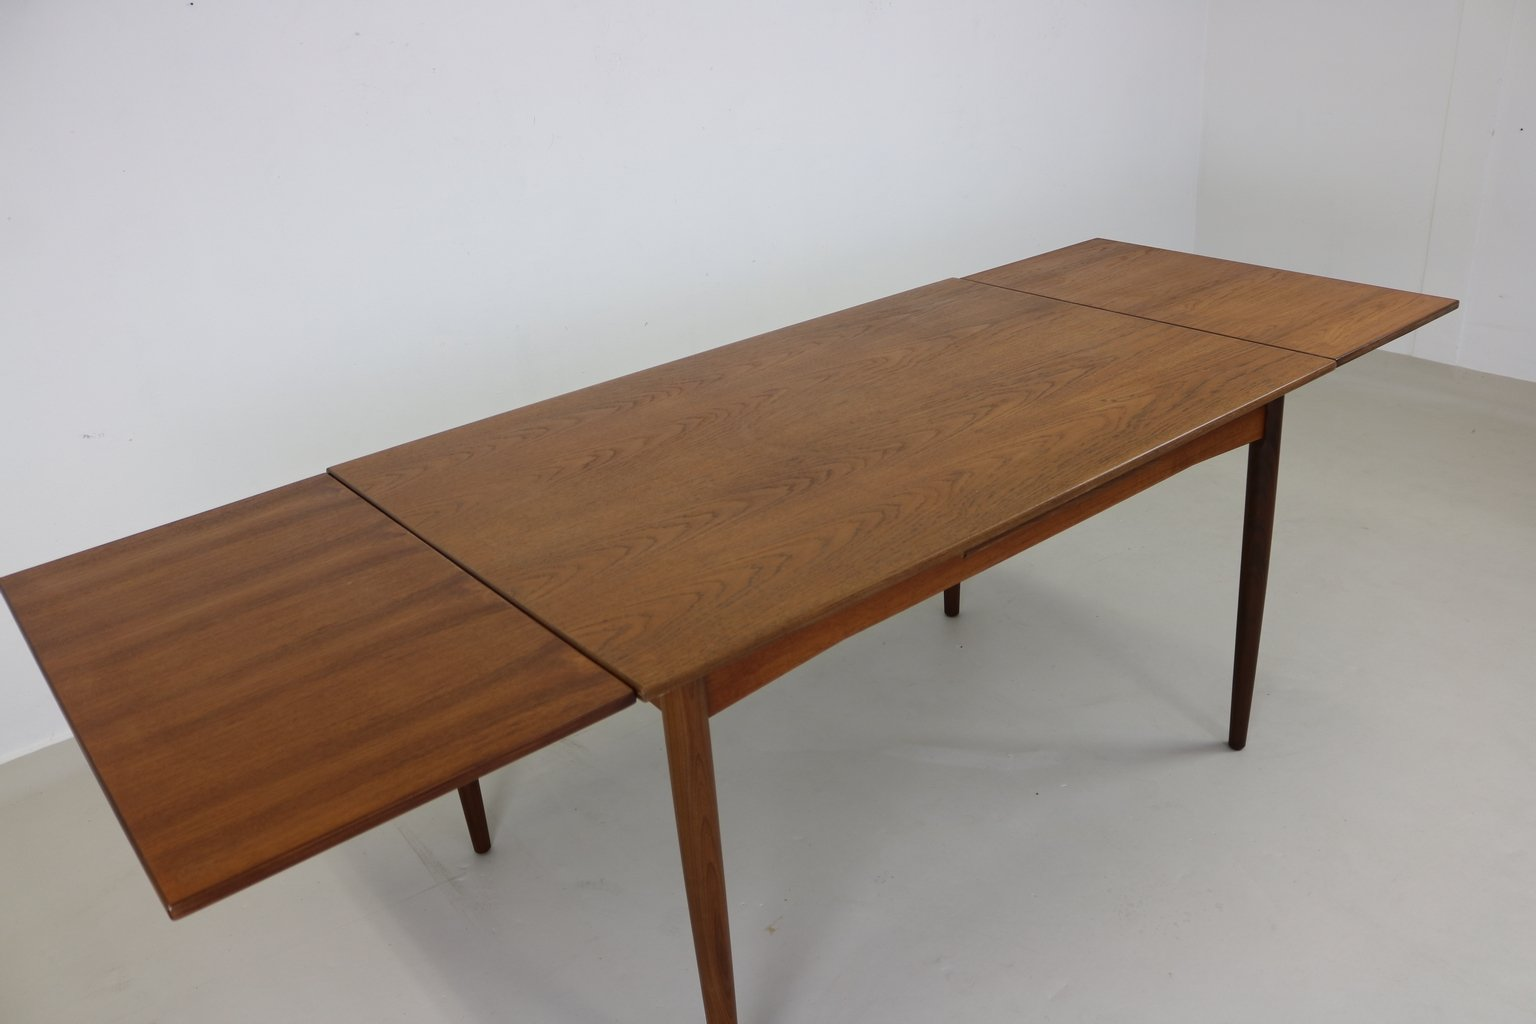 Table de salle manger en teck danemark 1965 en vente for Table salle a manger 3 suisses